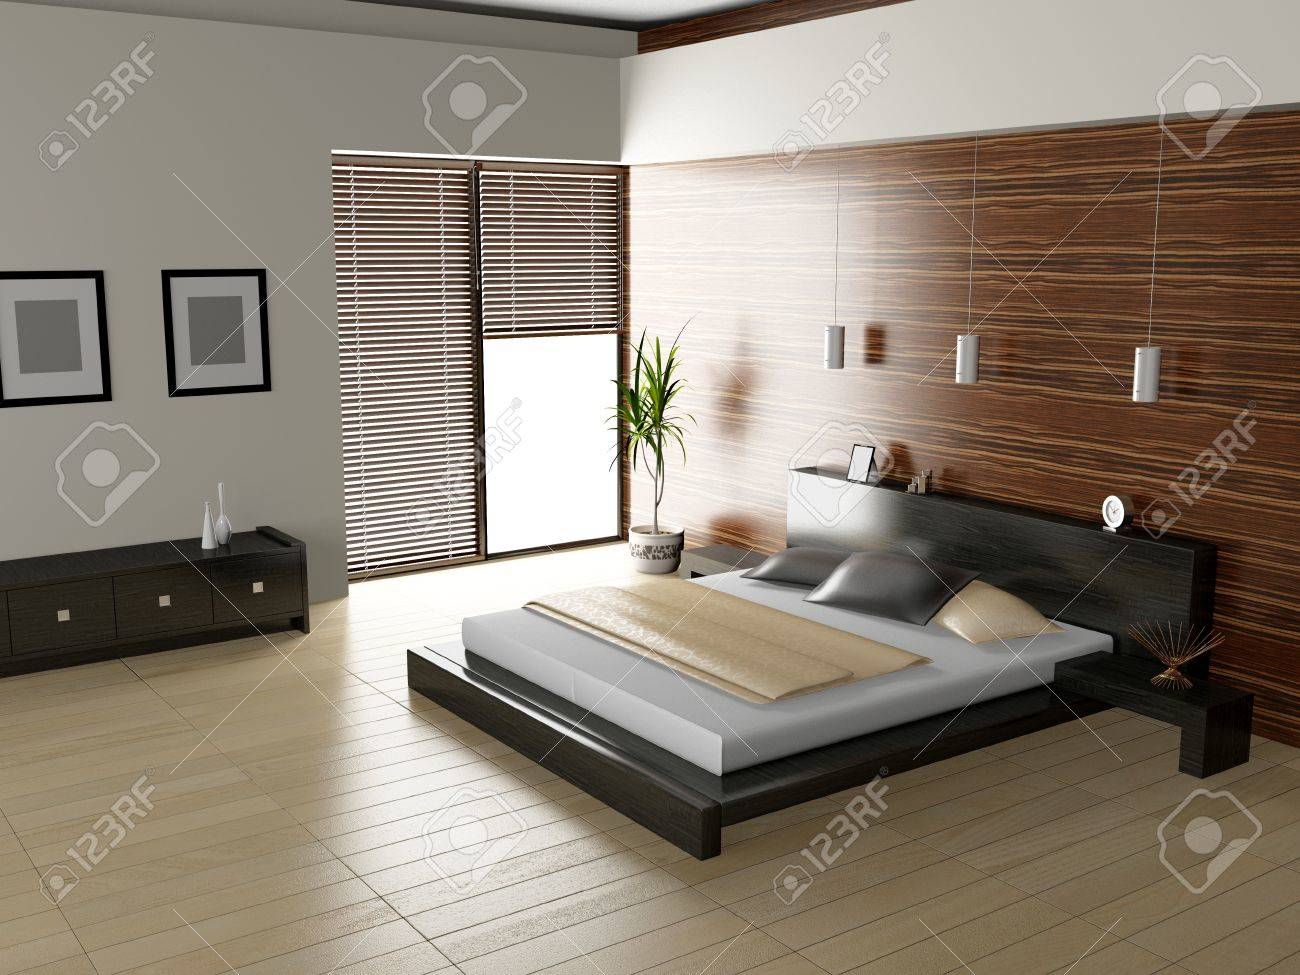 Modern interior of a bedroom room 3D Stock Photo - 23000612